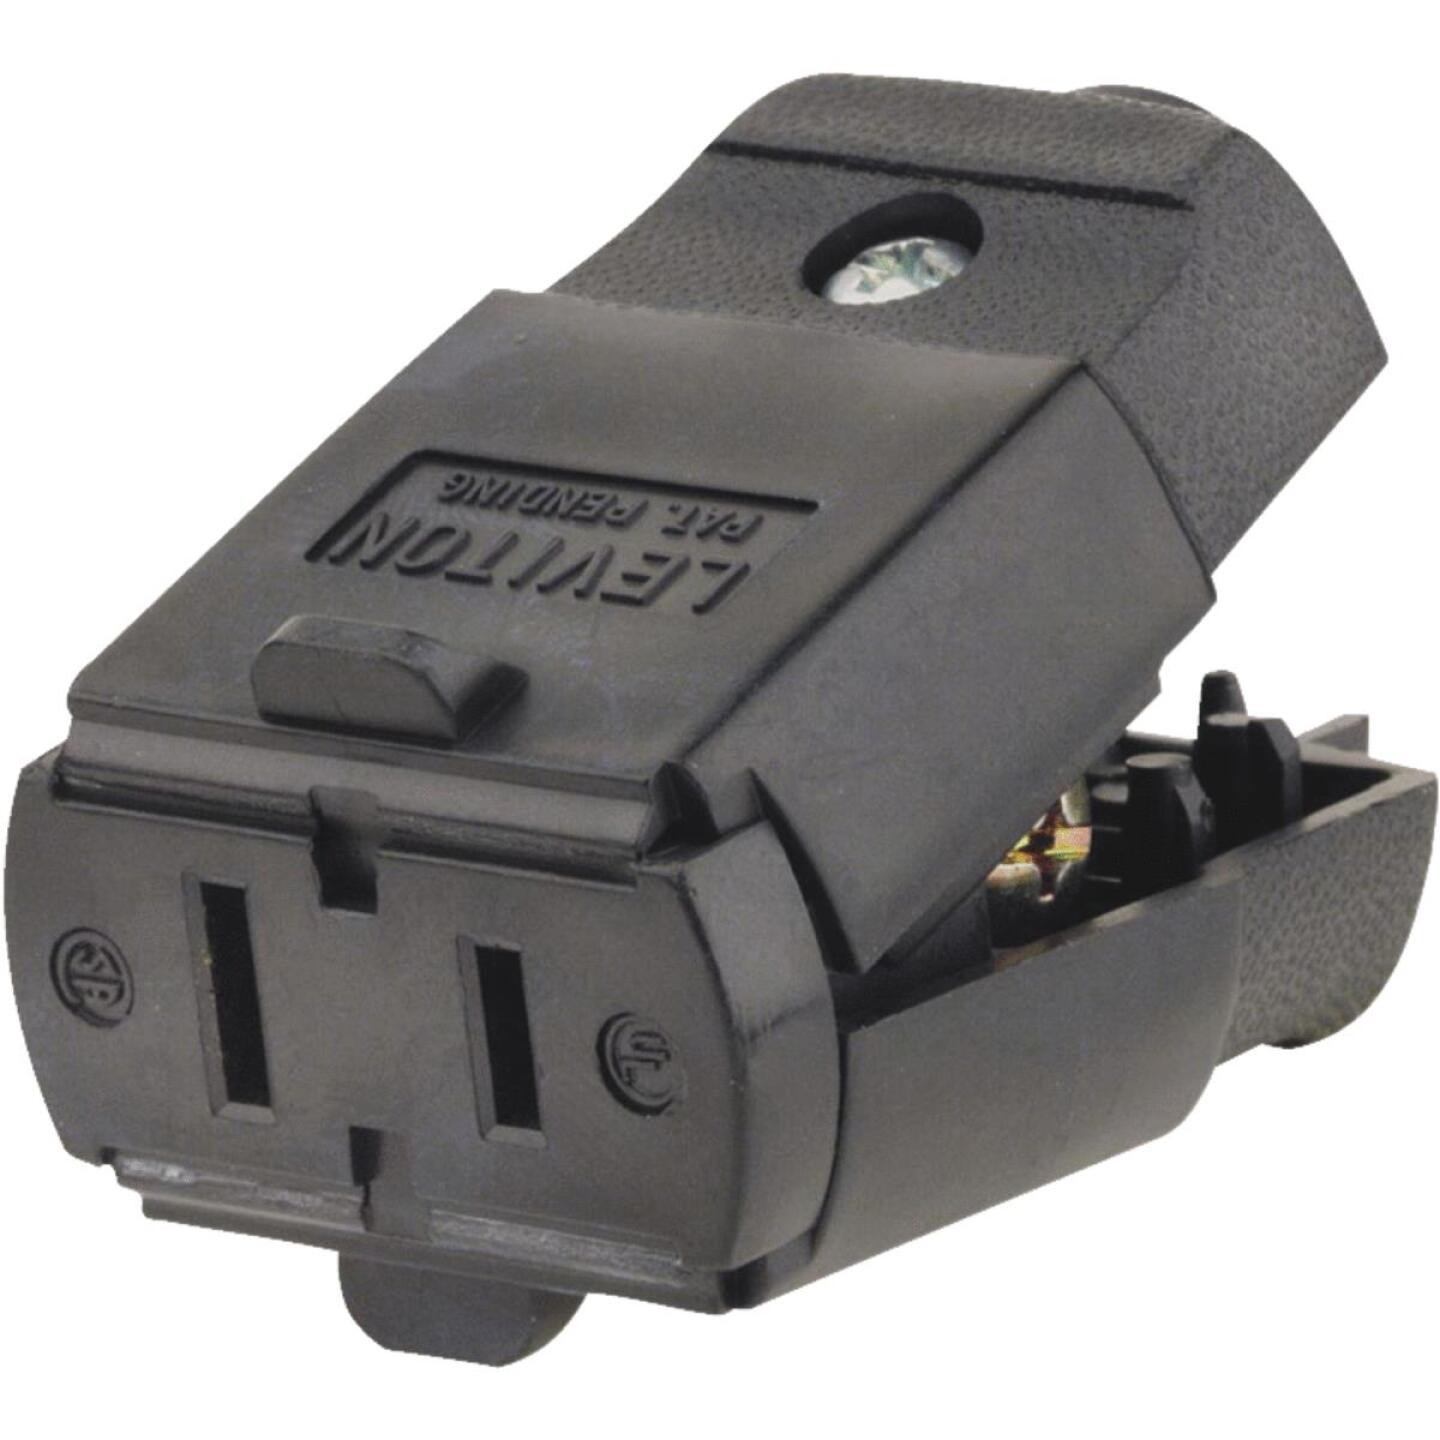 Leviton 15A 125V 2-Wire 2-Pole Hinged Cord Connector, Black Image 2